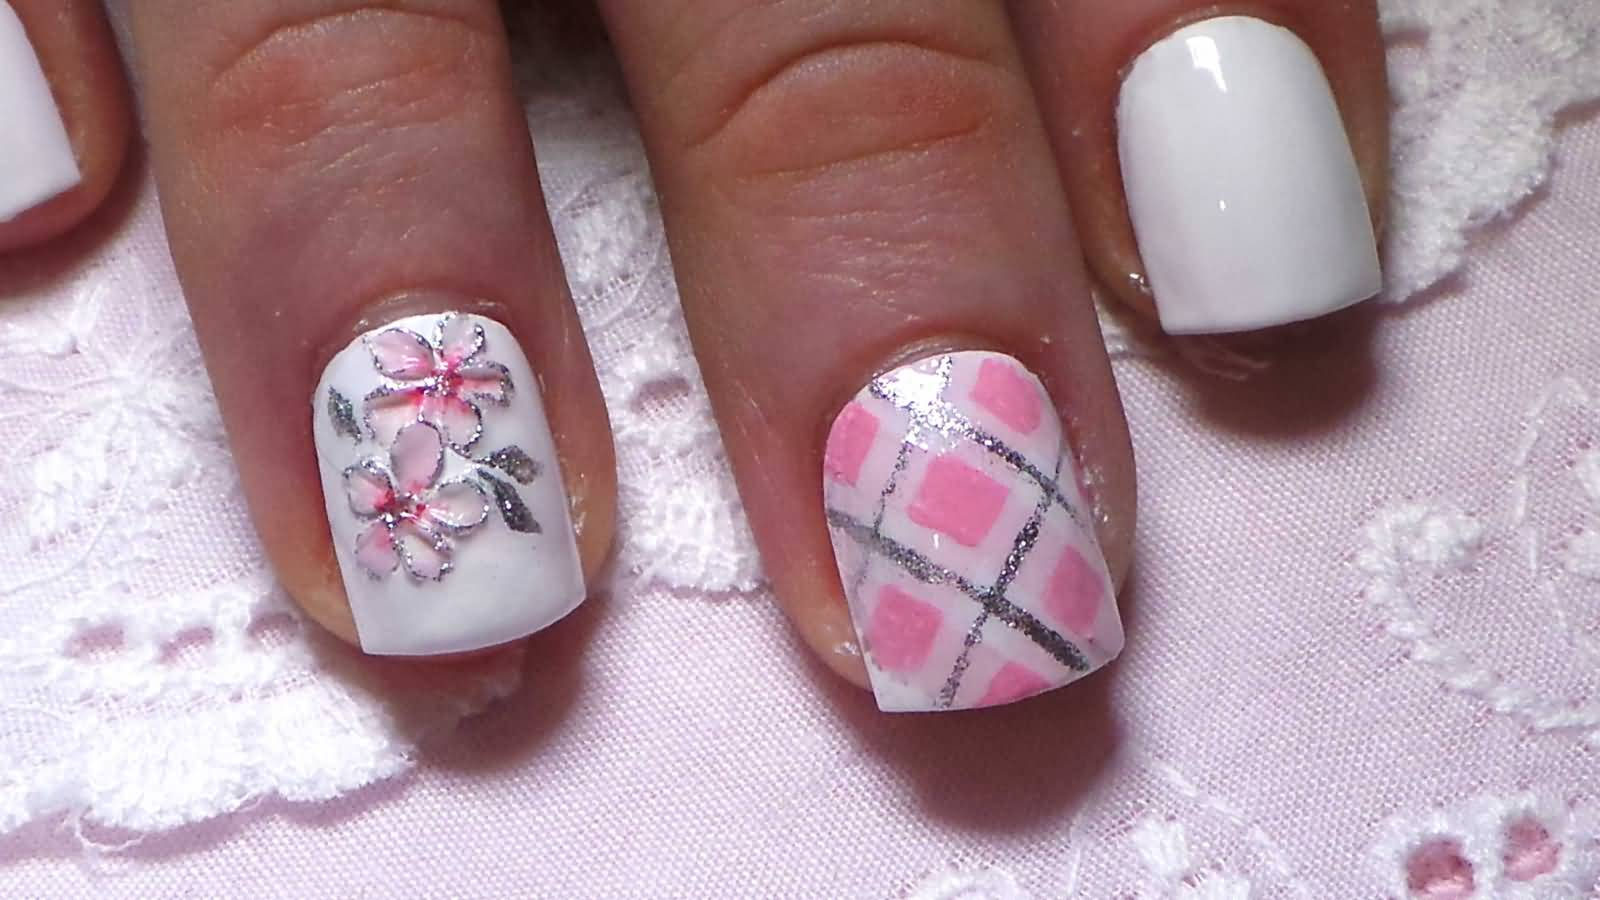 Silver Glitter Plaid Nail Art With Cherry Blossom Flowers